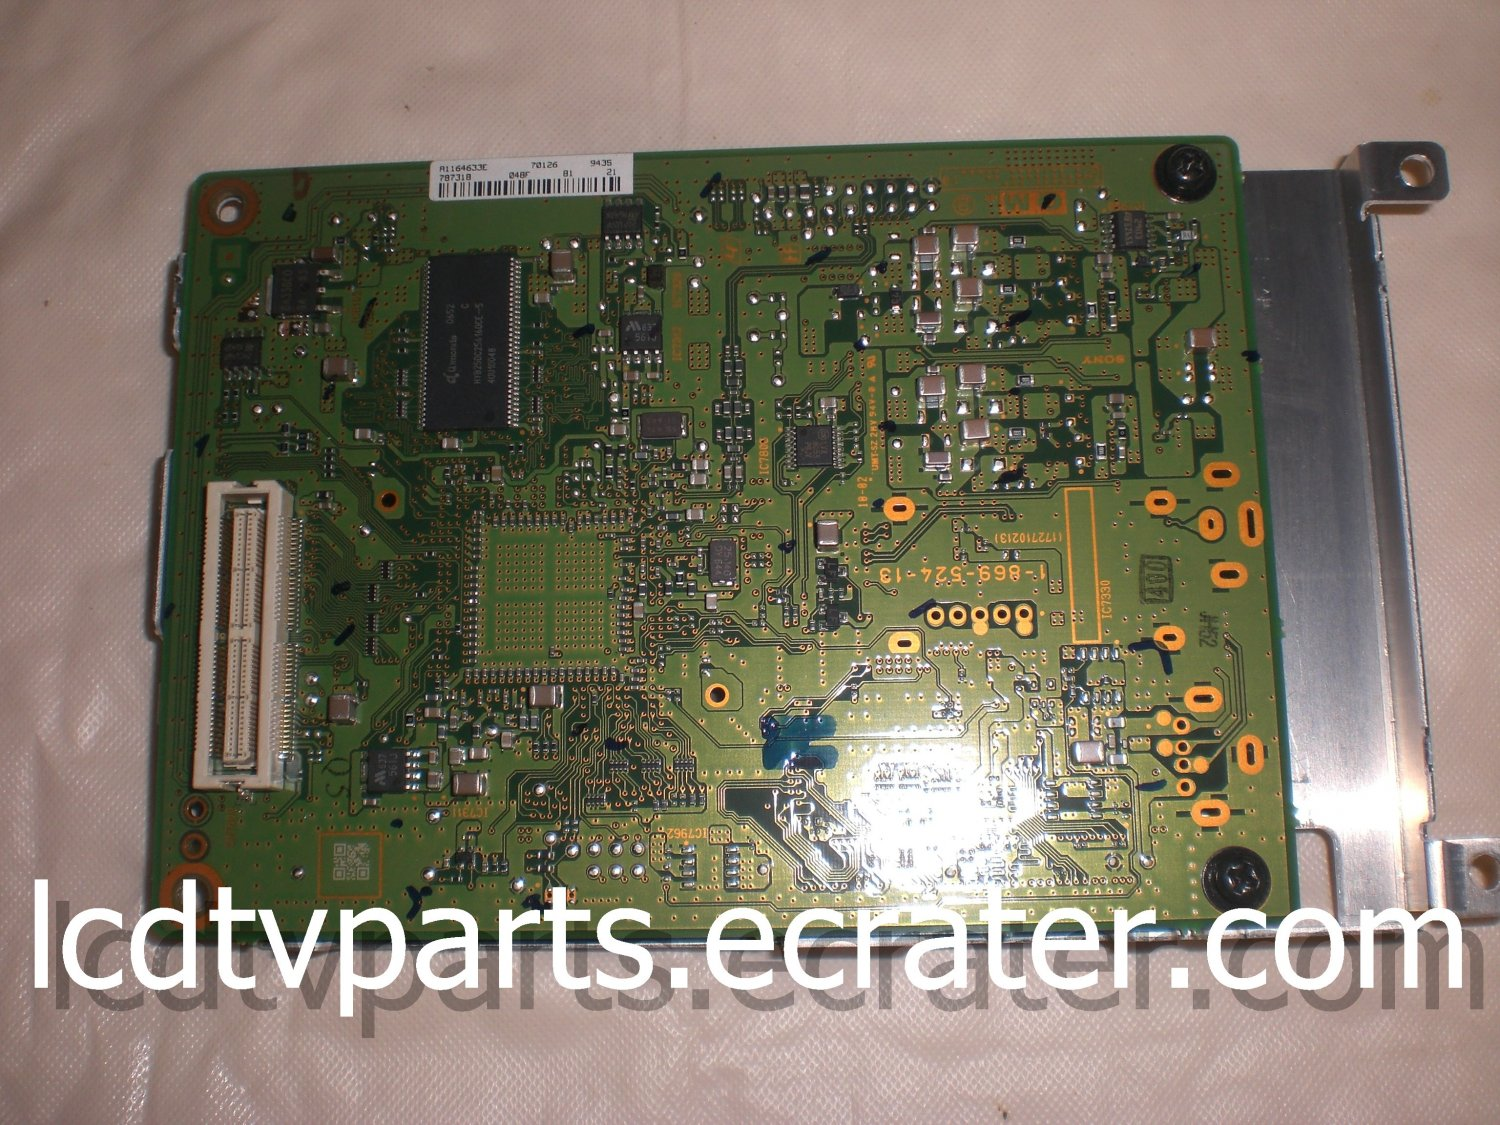 A-1212-258-A, A1212258A, 1-869-524-13, A1164633E ,QM Board For SONY KDL-46XBR2